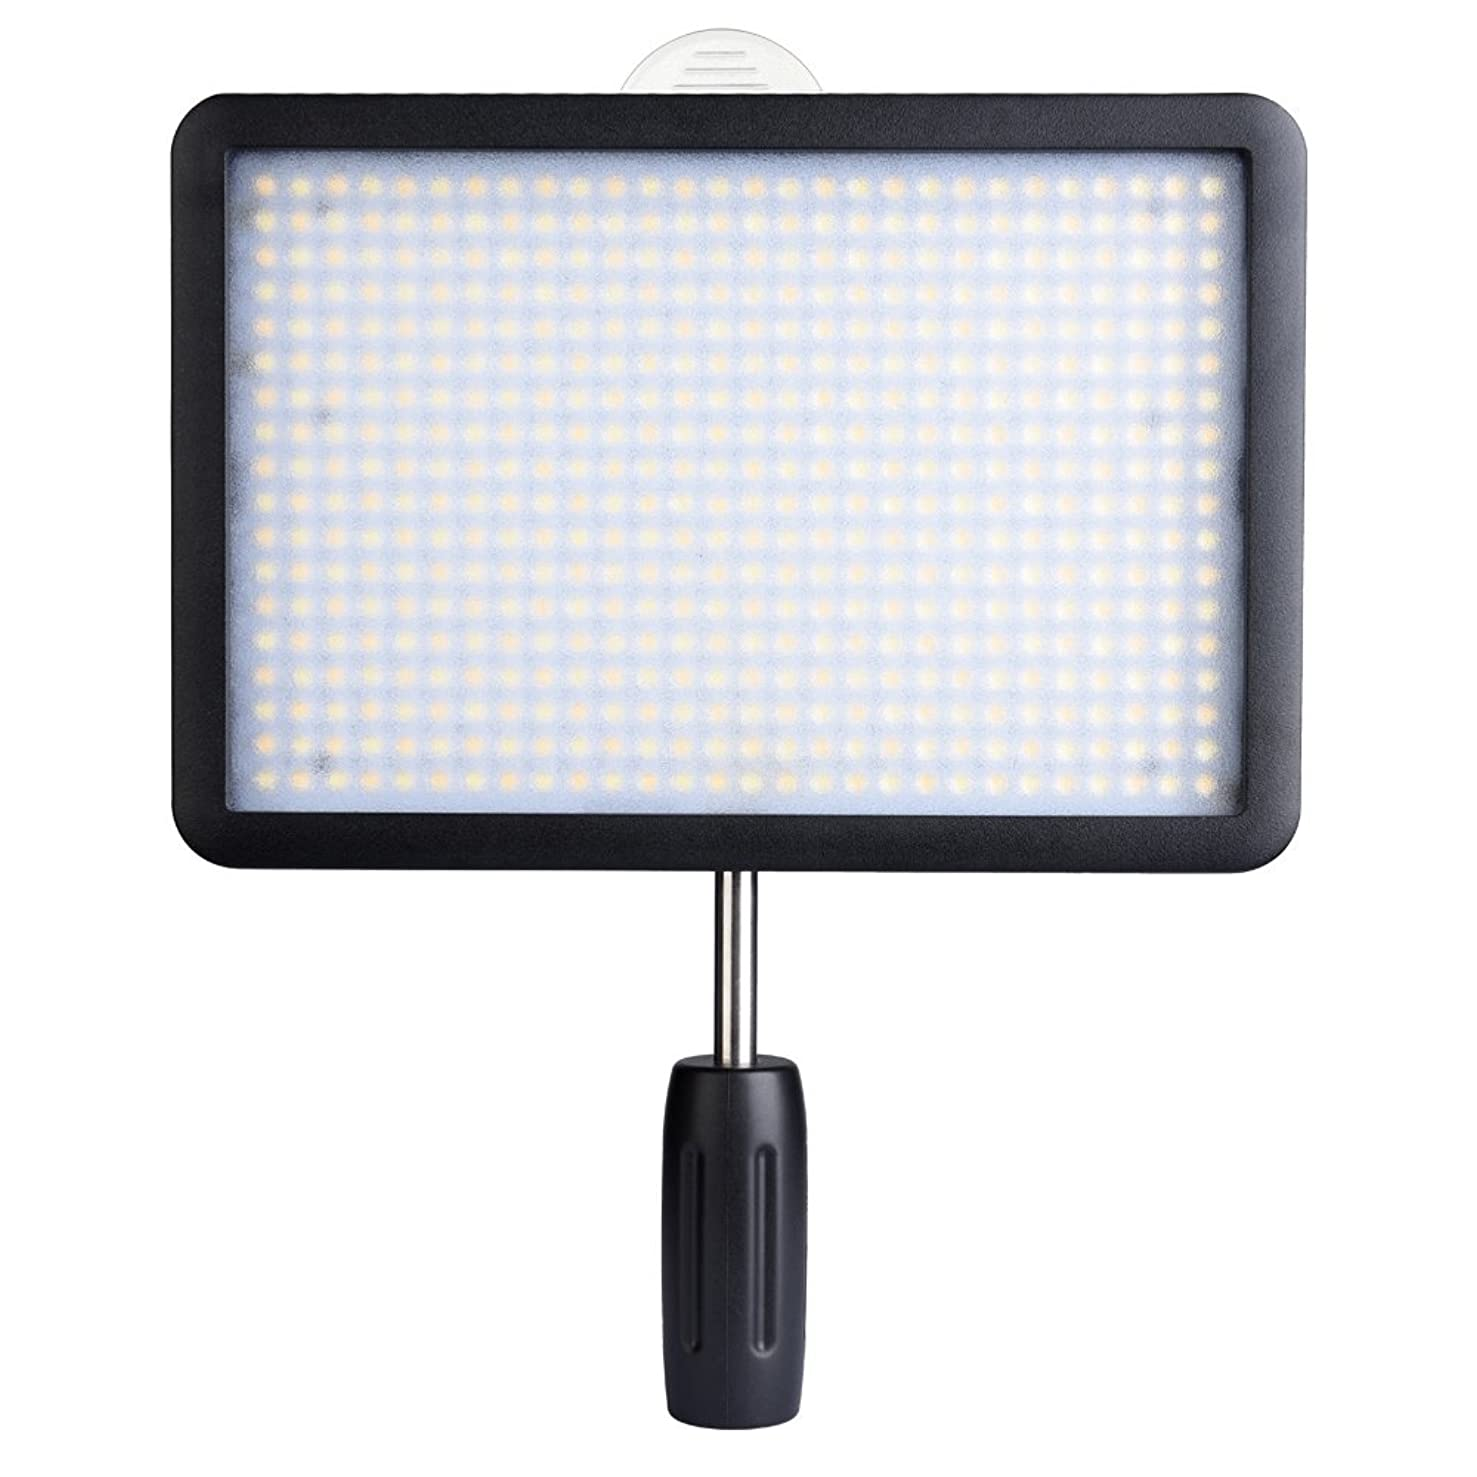 Godox LED500LY Yellow Version 3300K LED Video Light with Handle and RC-A5 Remote Control